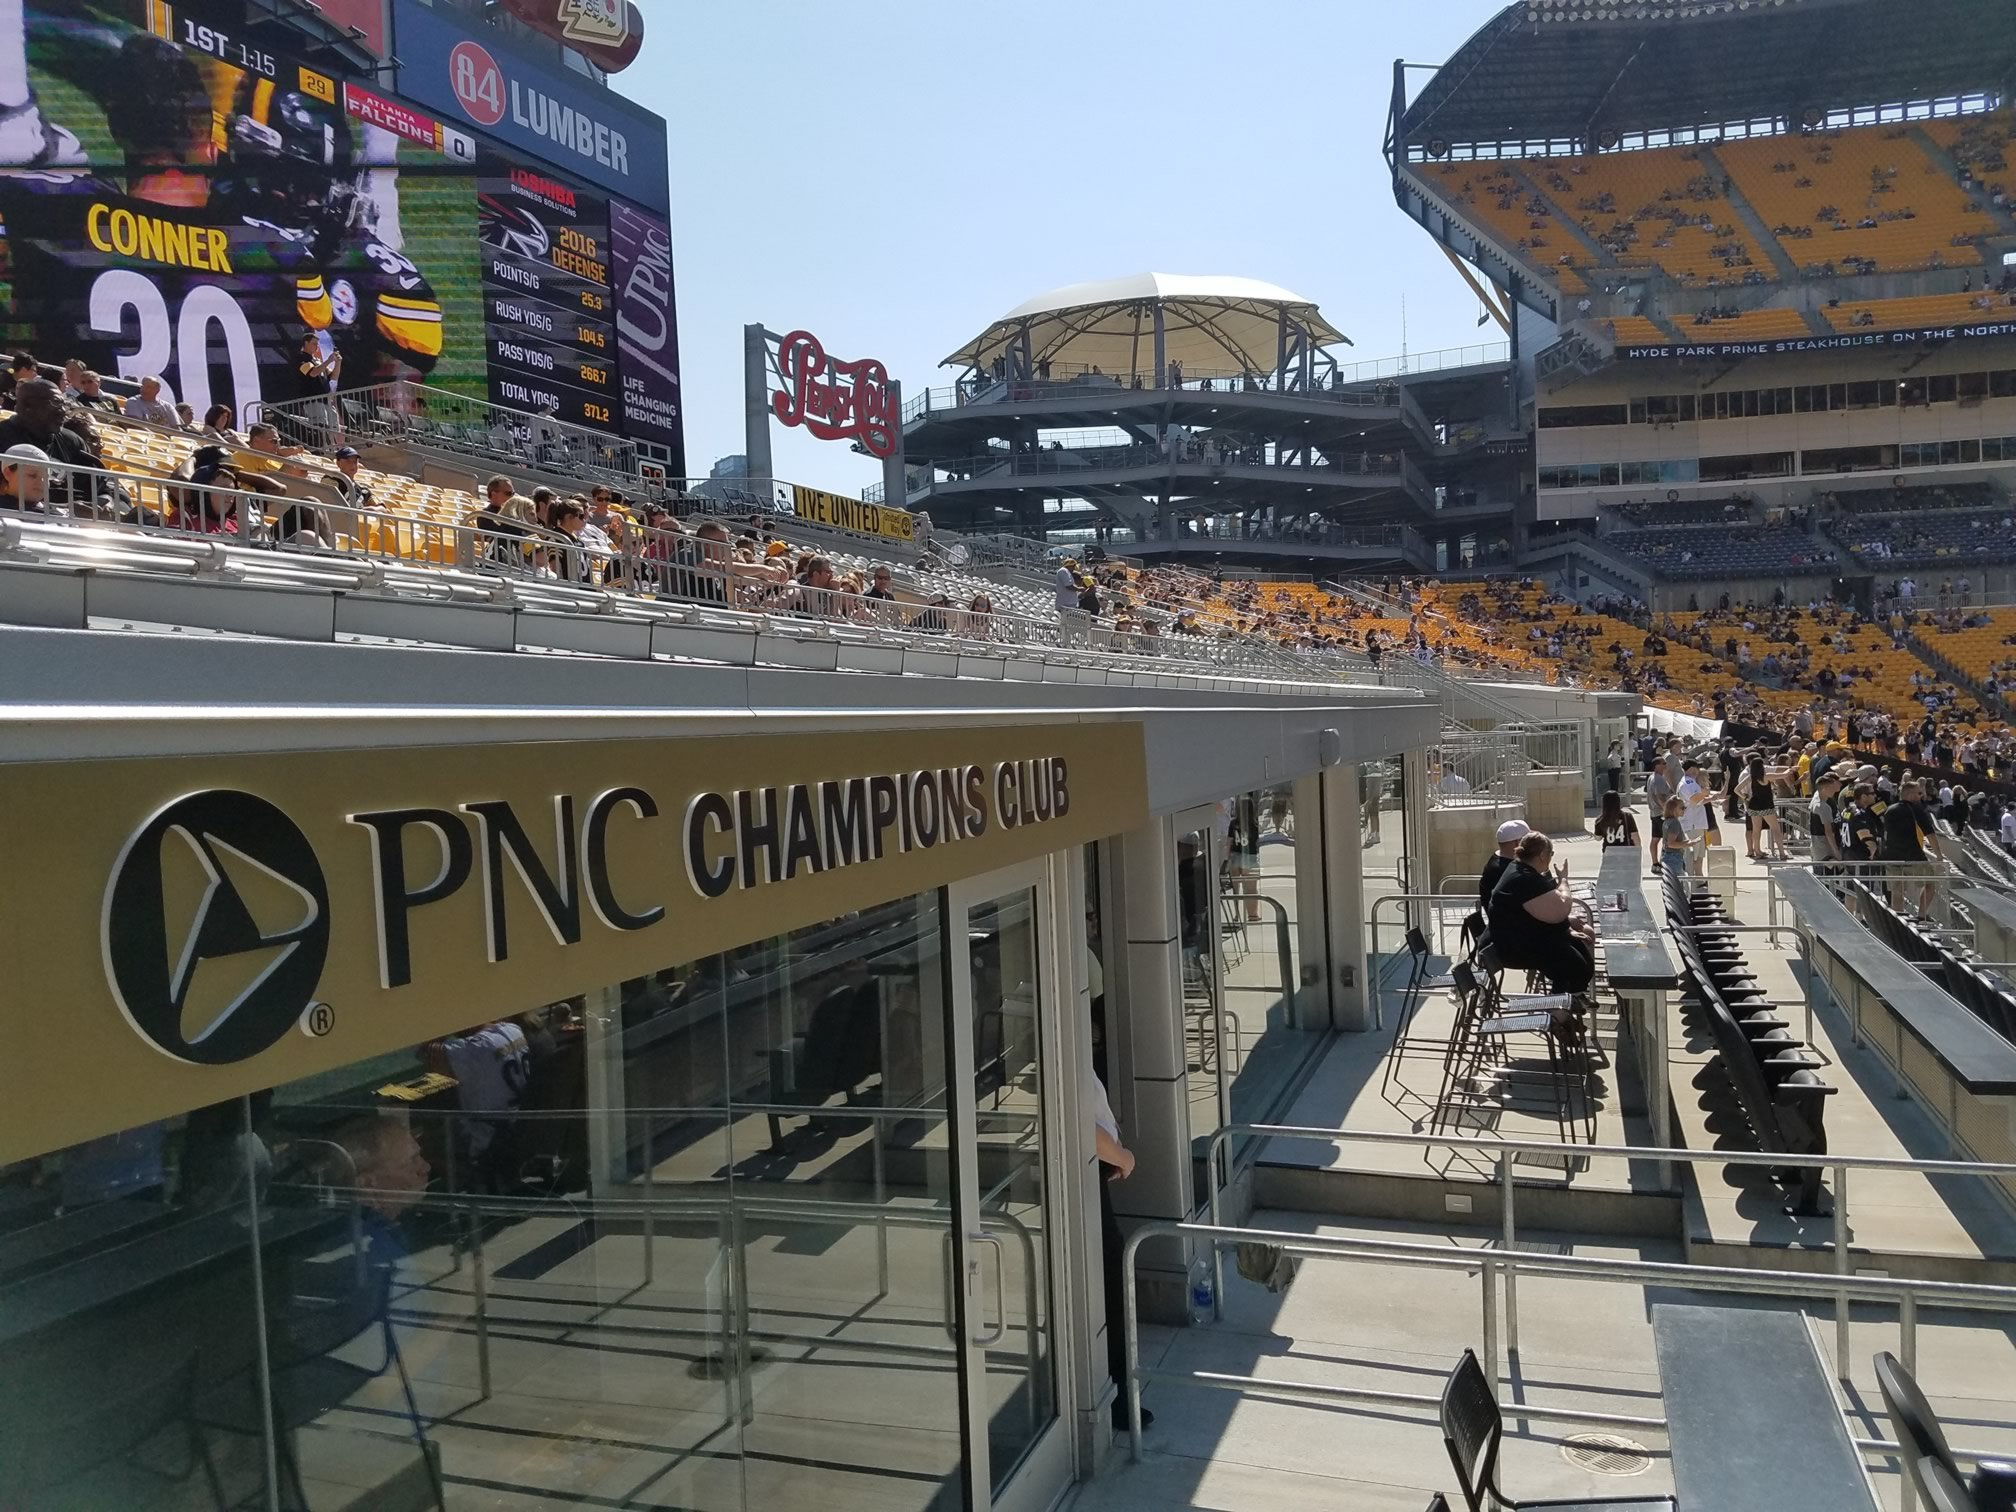 Looking Down Into The Champions Club Plaza